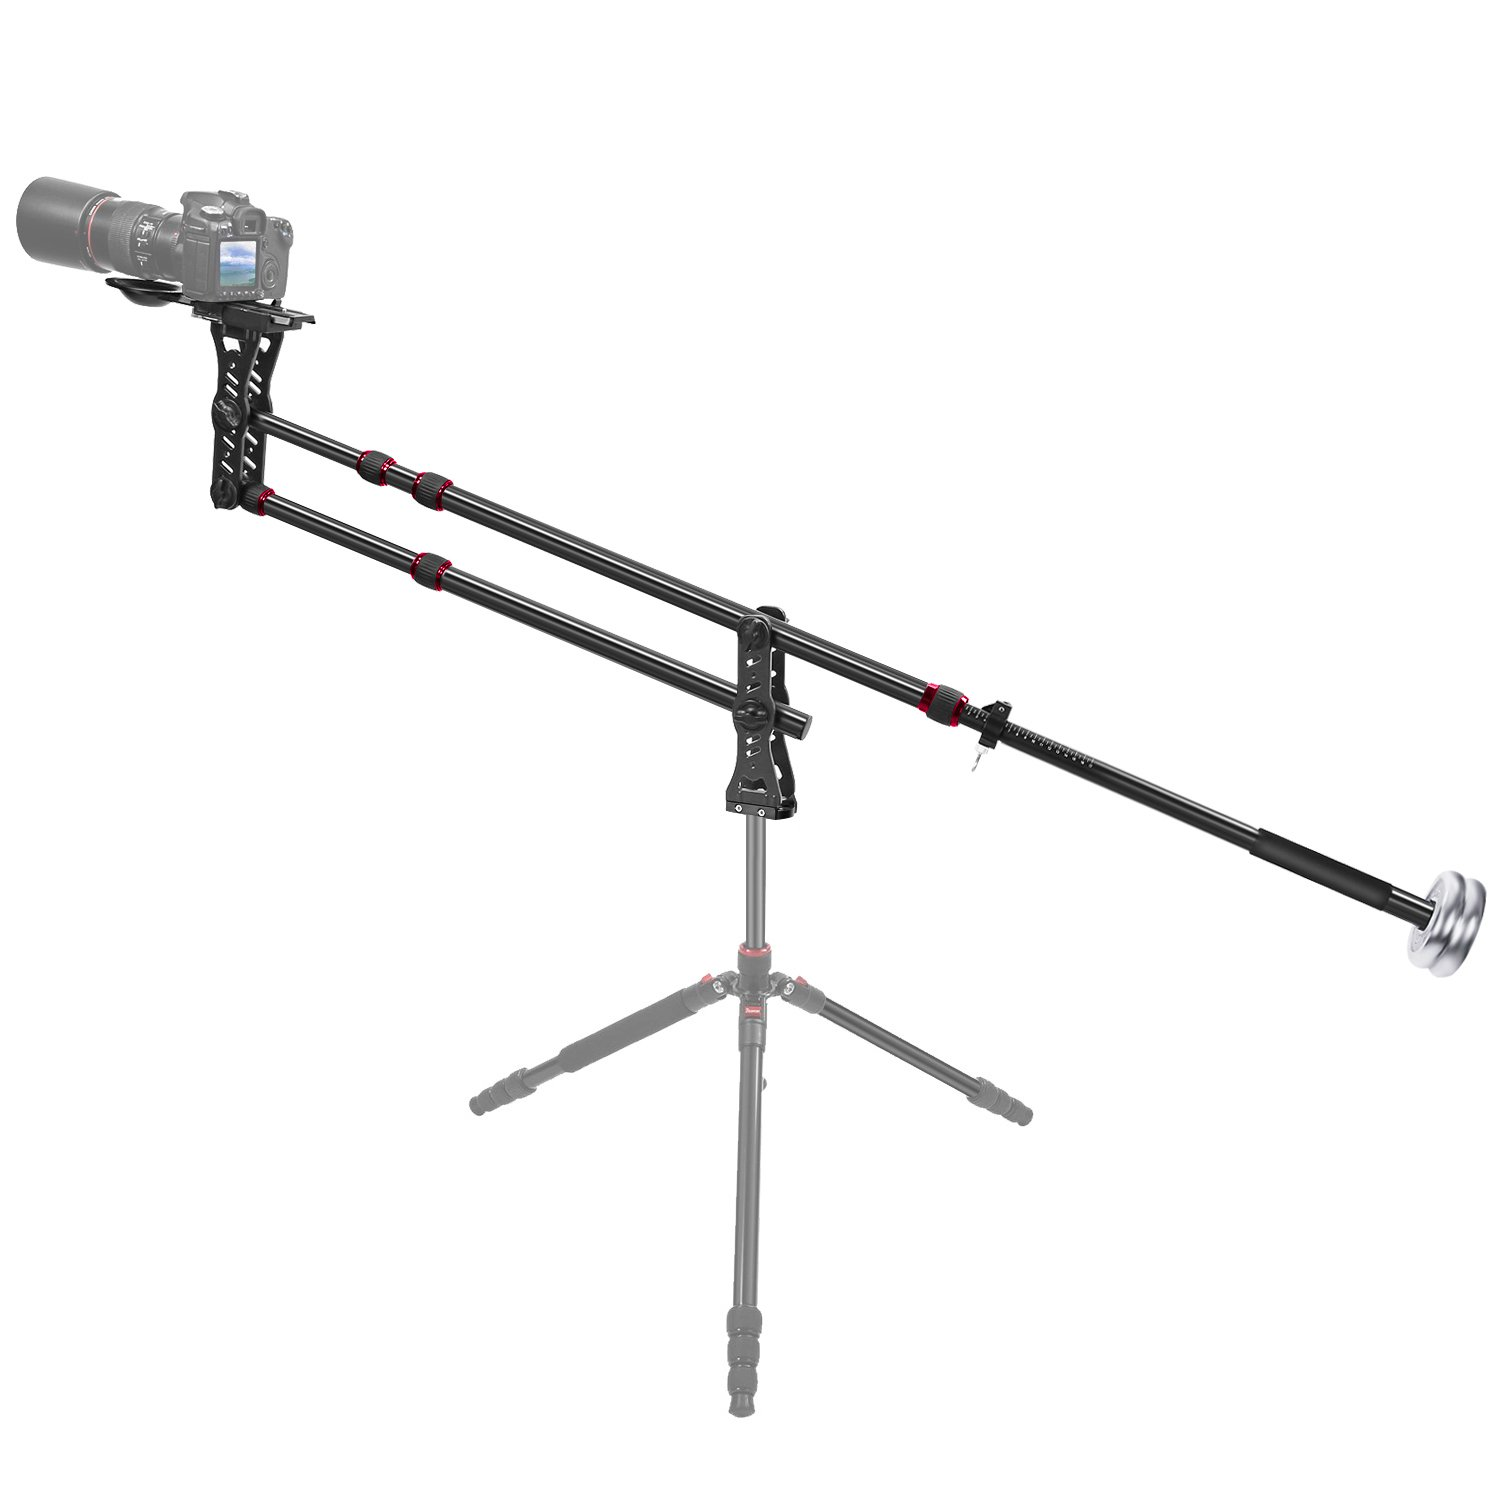 Neewer 70 inches/177 Centimeters Aluminum Alloy Jib Arm Camera Crane with 1/4 and 3/8-inch Quick Shoe Plate, Counter Weight for DSLR Video Cameras,Load up to 8 kilograms/17.6 pounds by Neewer